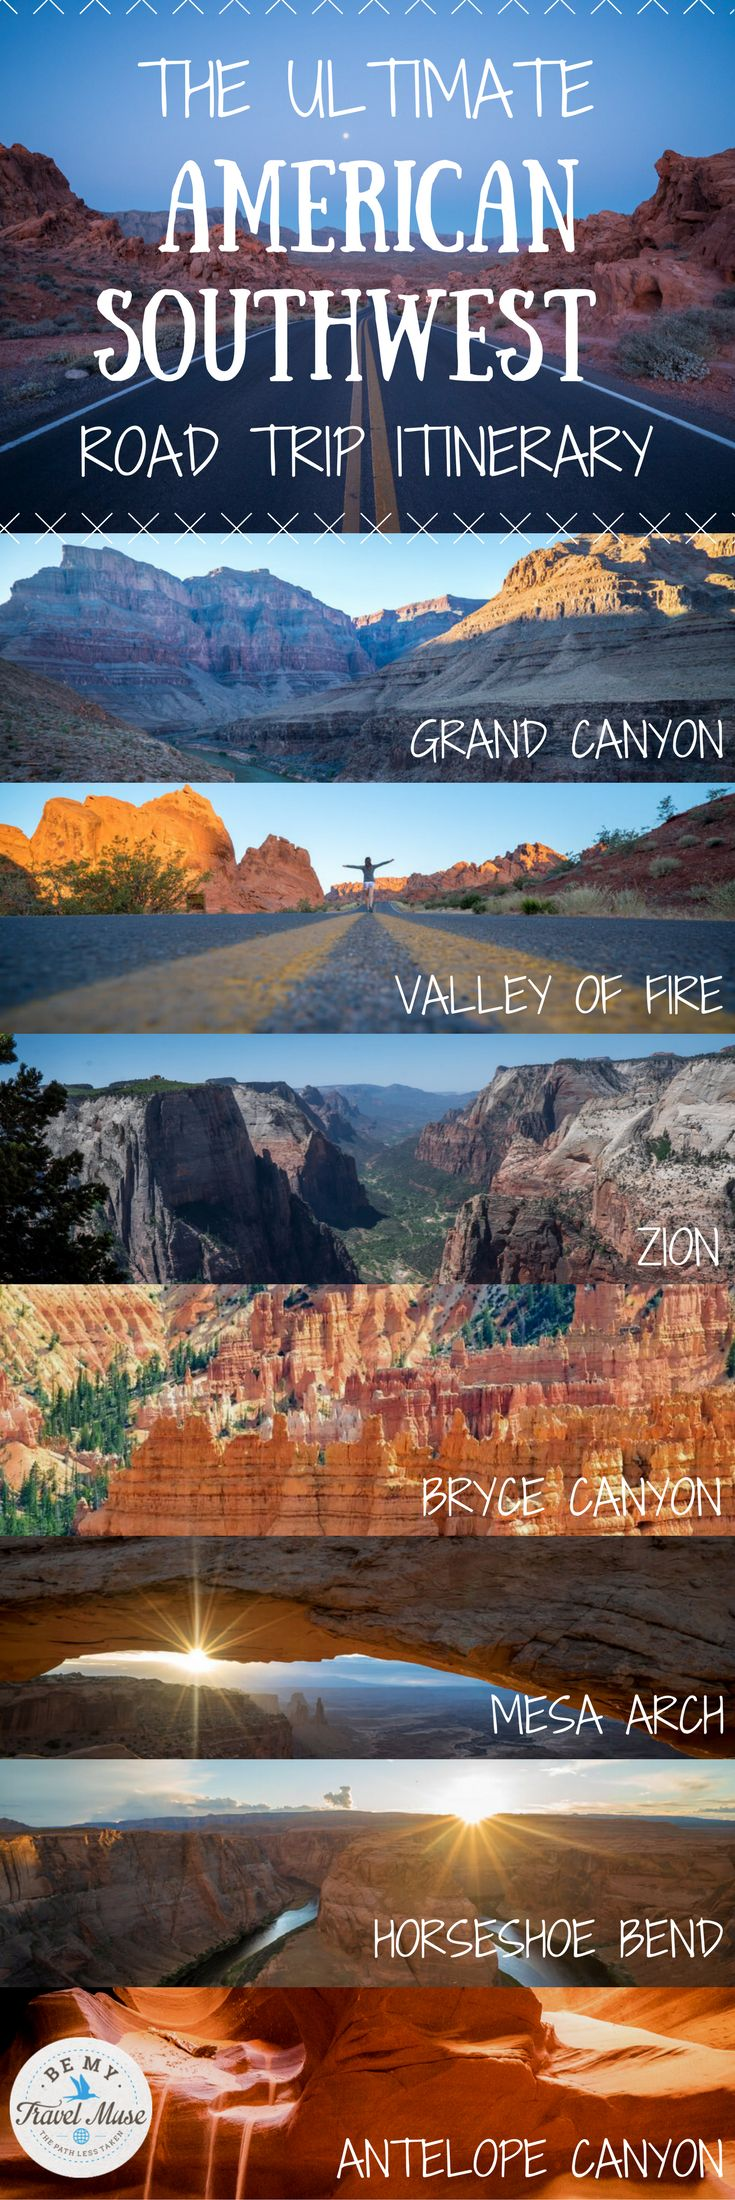 The ultimate road trip itinerary through America's Southwest with stops at national parks and monuments throughout Nevada, Utah and Arizona including the Grand Canyon, Horseshoe Bend, Zion, Antelope Canyon & more